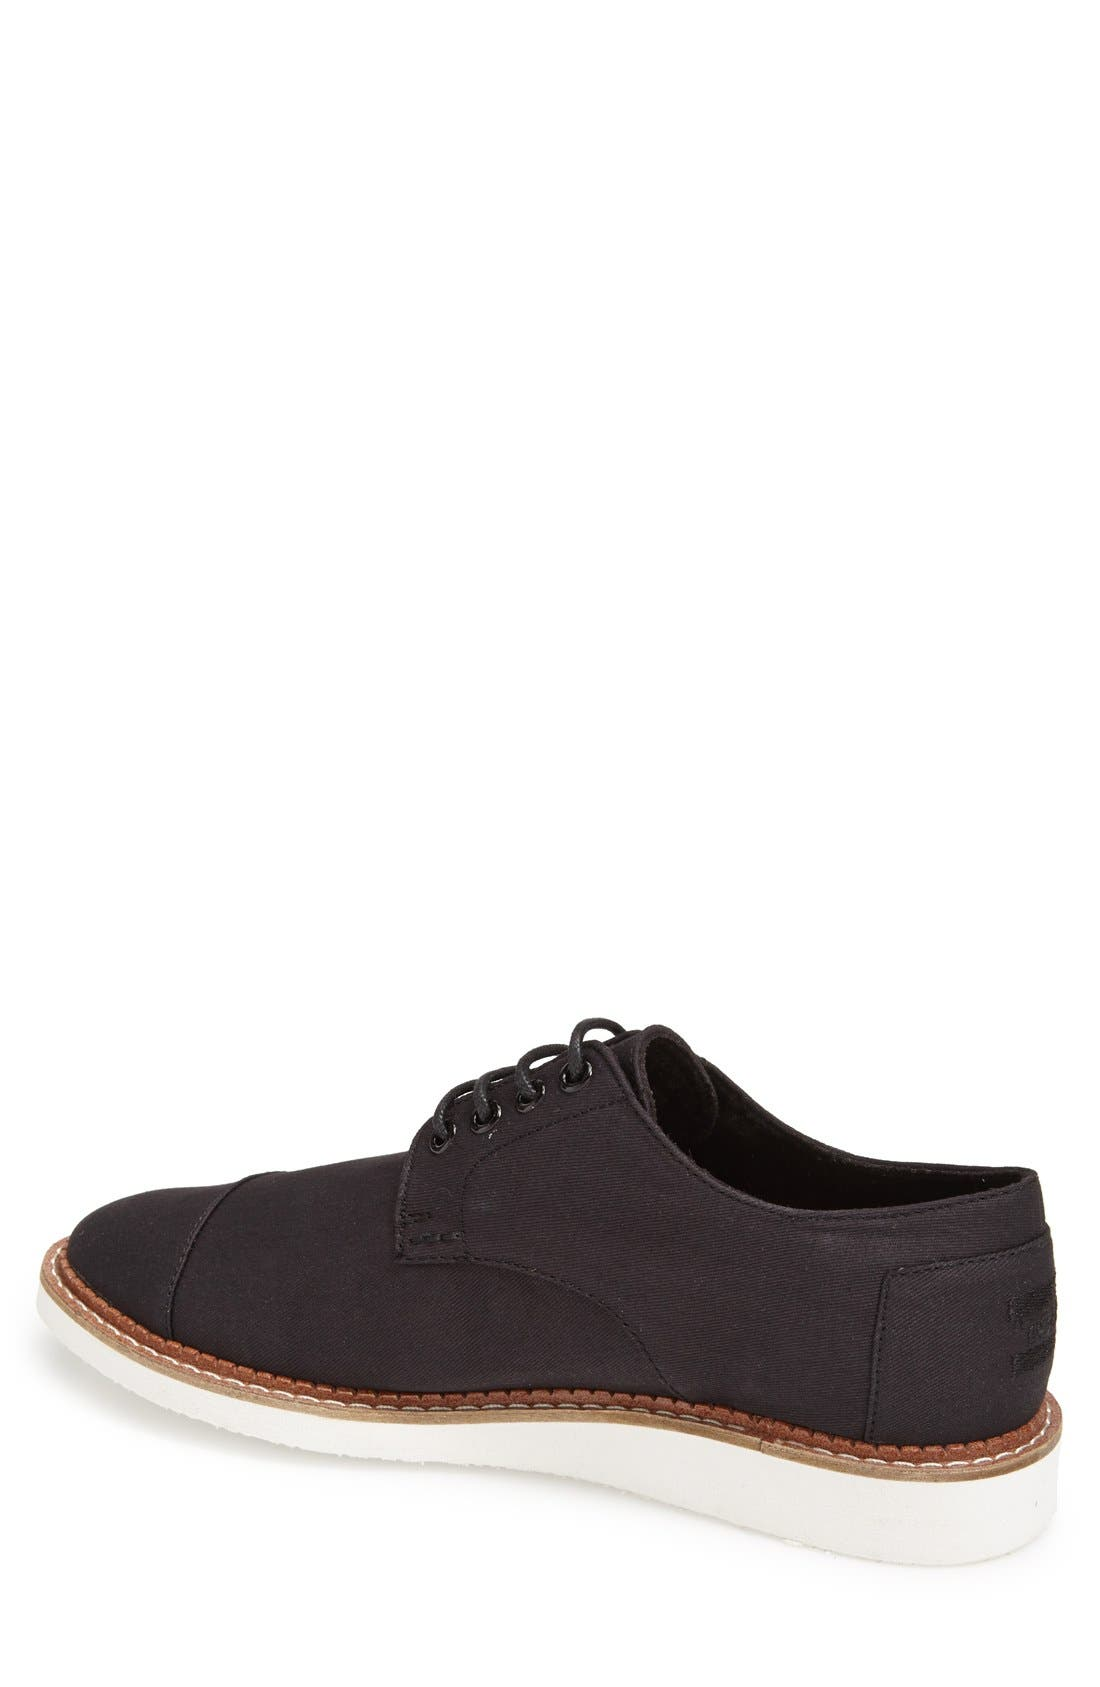 'Classic Brogue' Cotton Twill Derby,                             Alternate thumbnail 16, color,